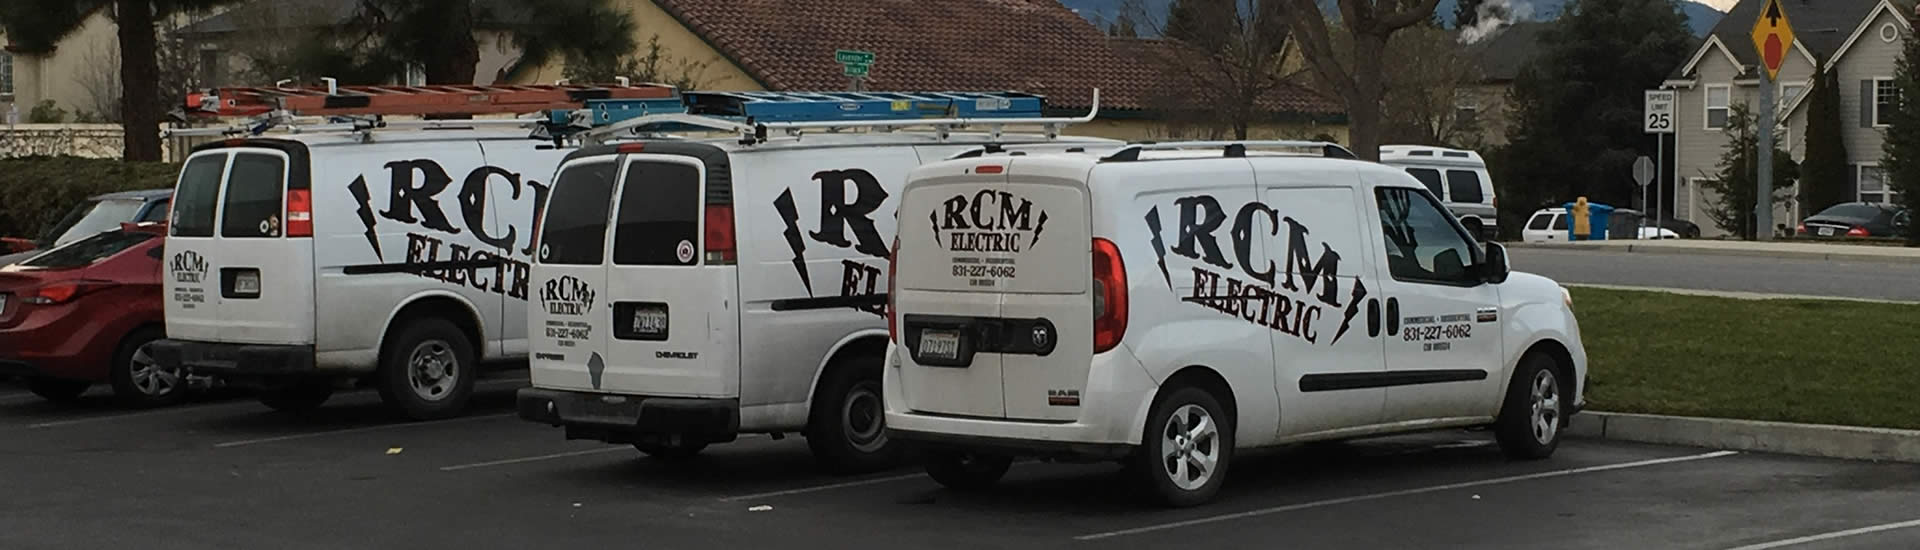 About RCM Electric Company, Inc.